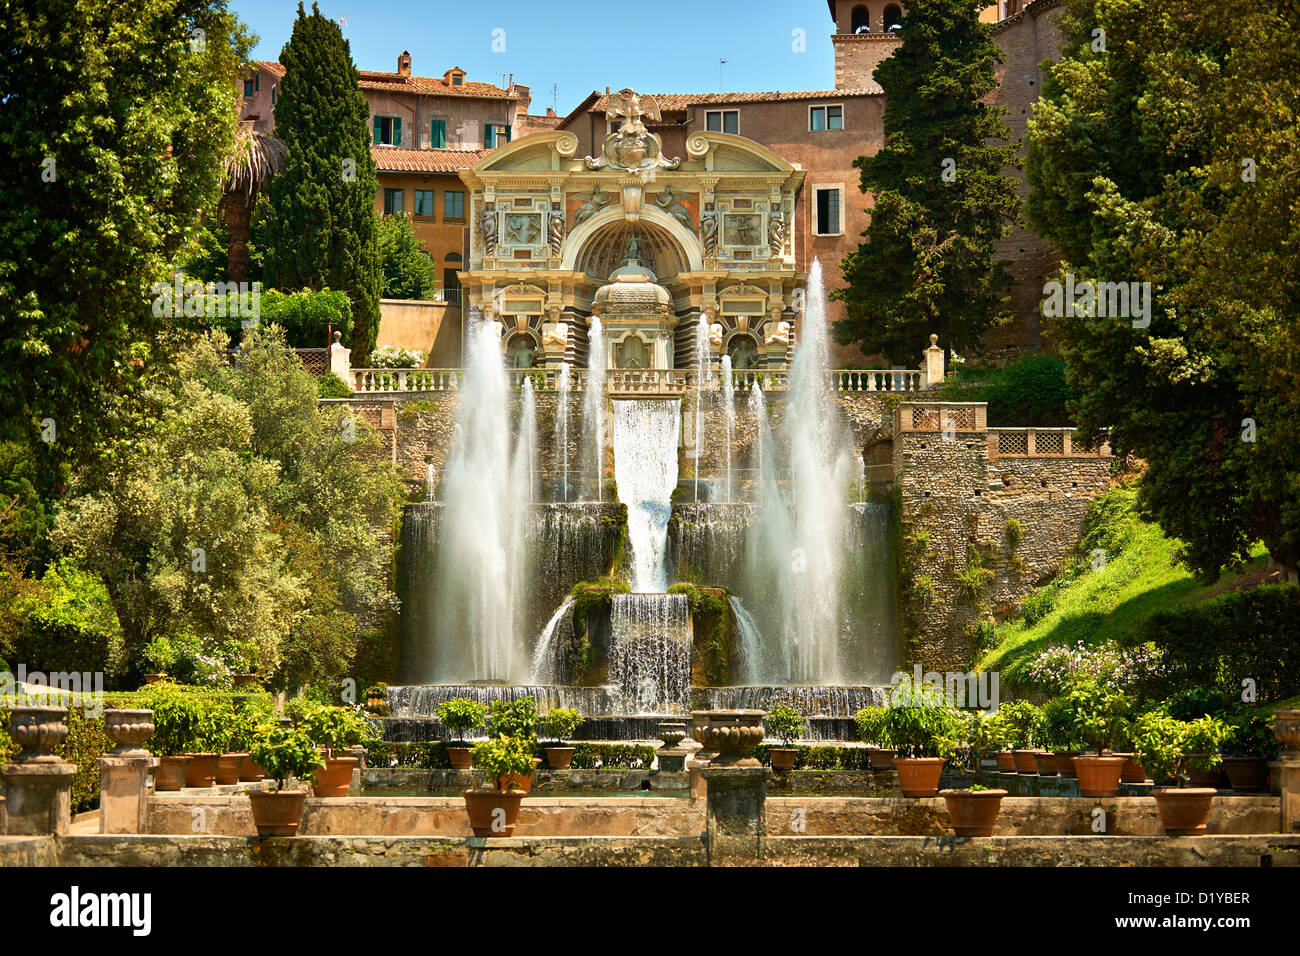 The water jets of the Organ fountain, Villa d\'Este, Tivoli, Italy ...